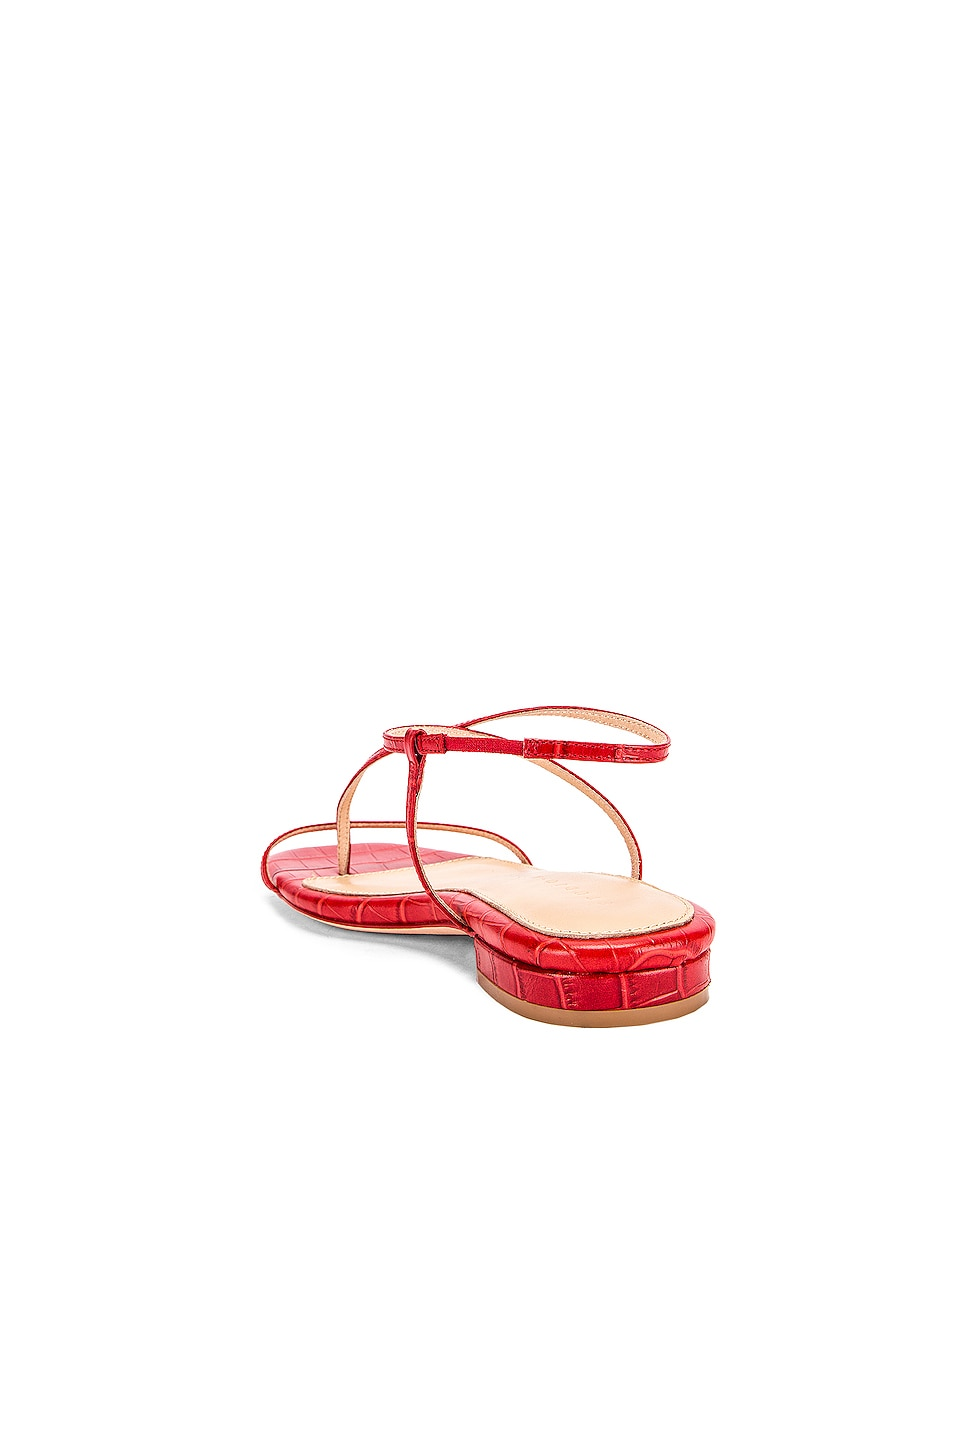 Image 3 of Studio Amelia 1.2 Sandal in Red Croc